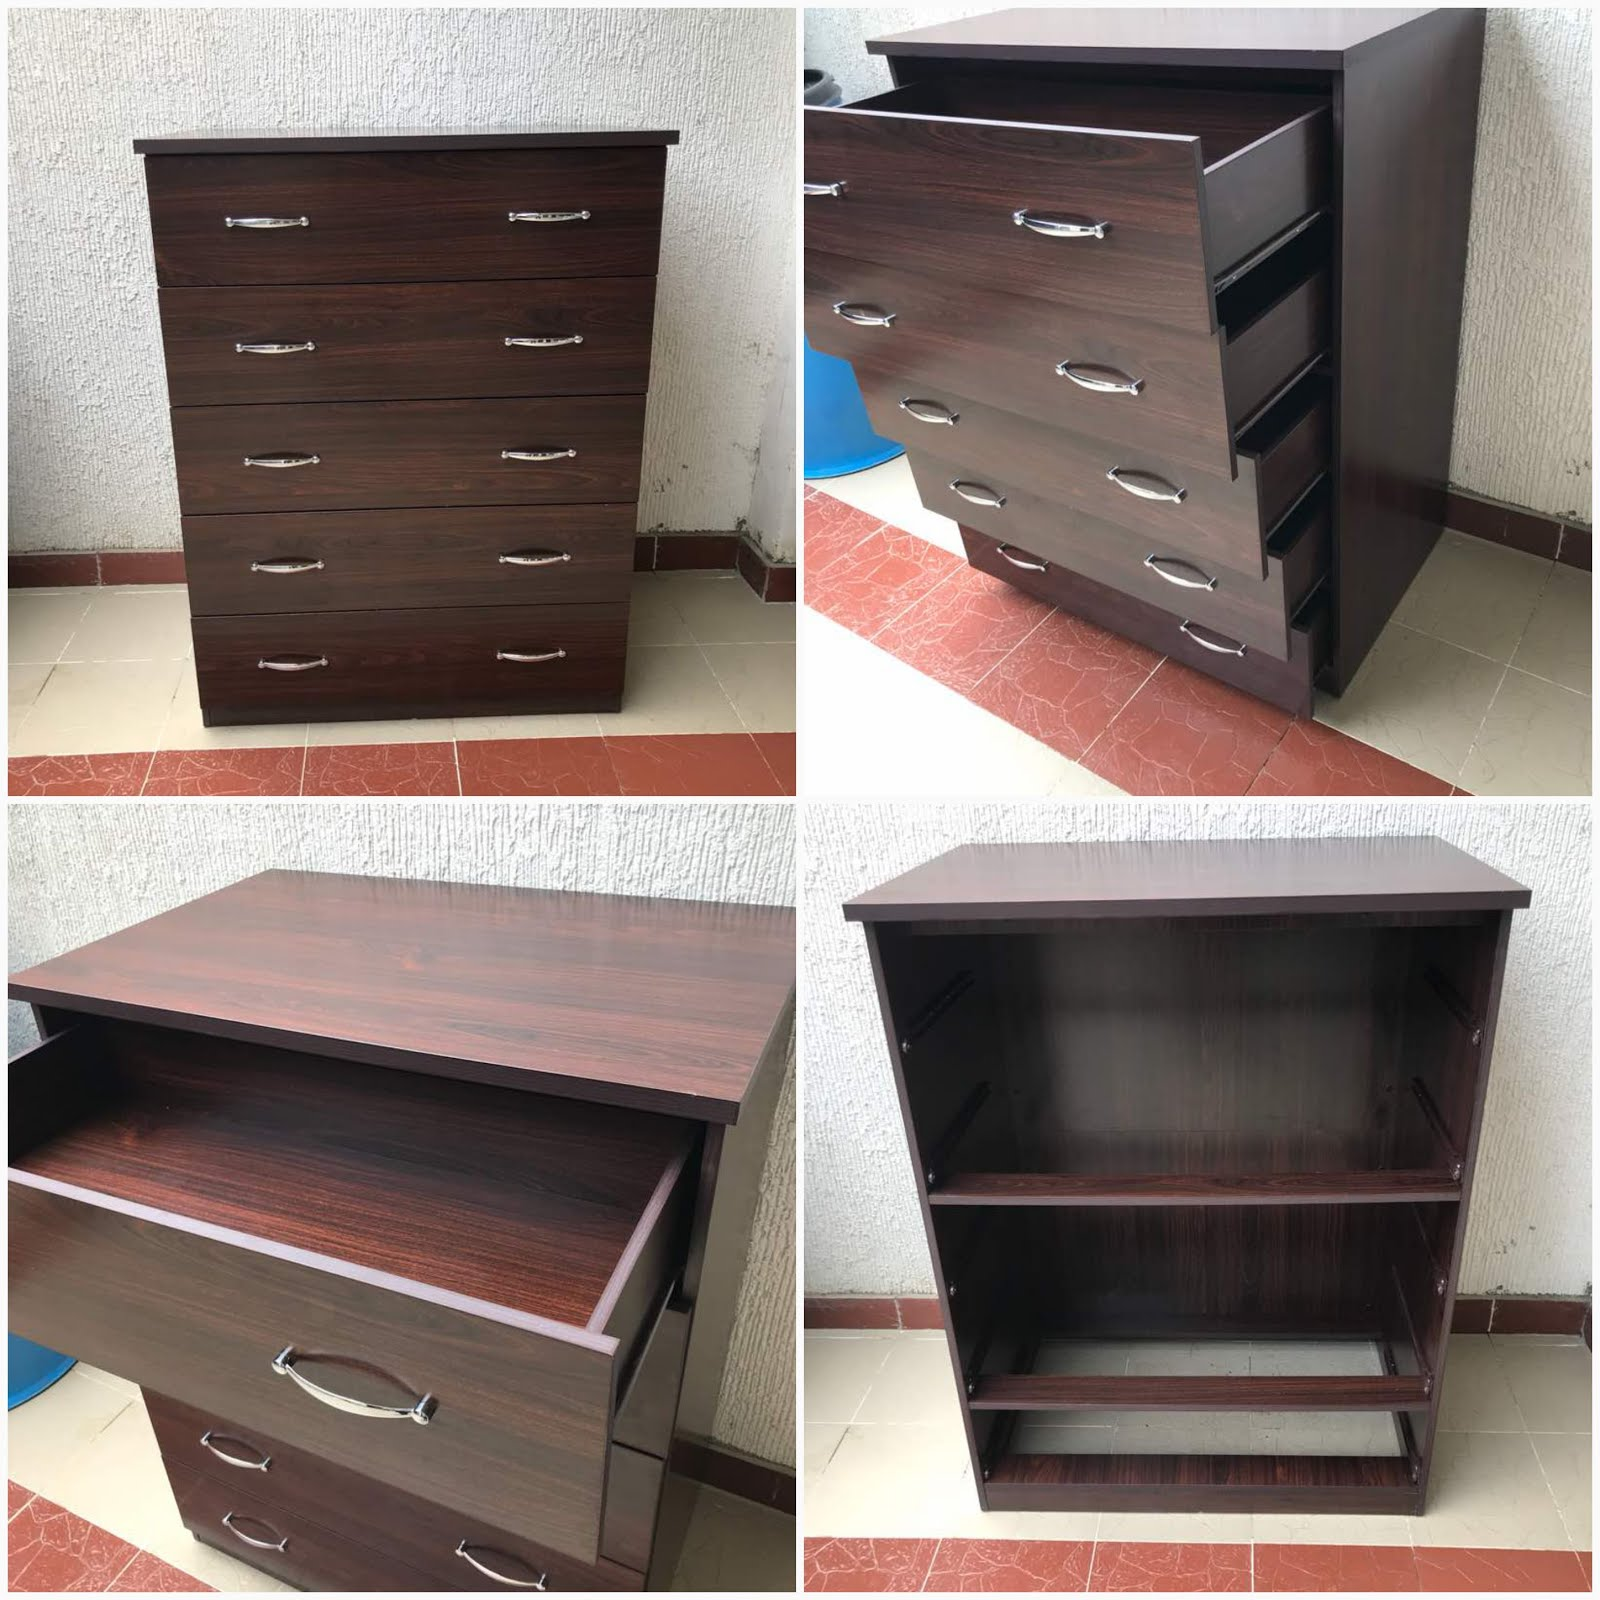 120dd90057 Chest of Drawers ( selling for a friend) | ኢትዮ ሸመታ - Ethio ...